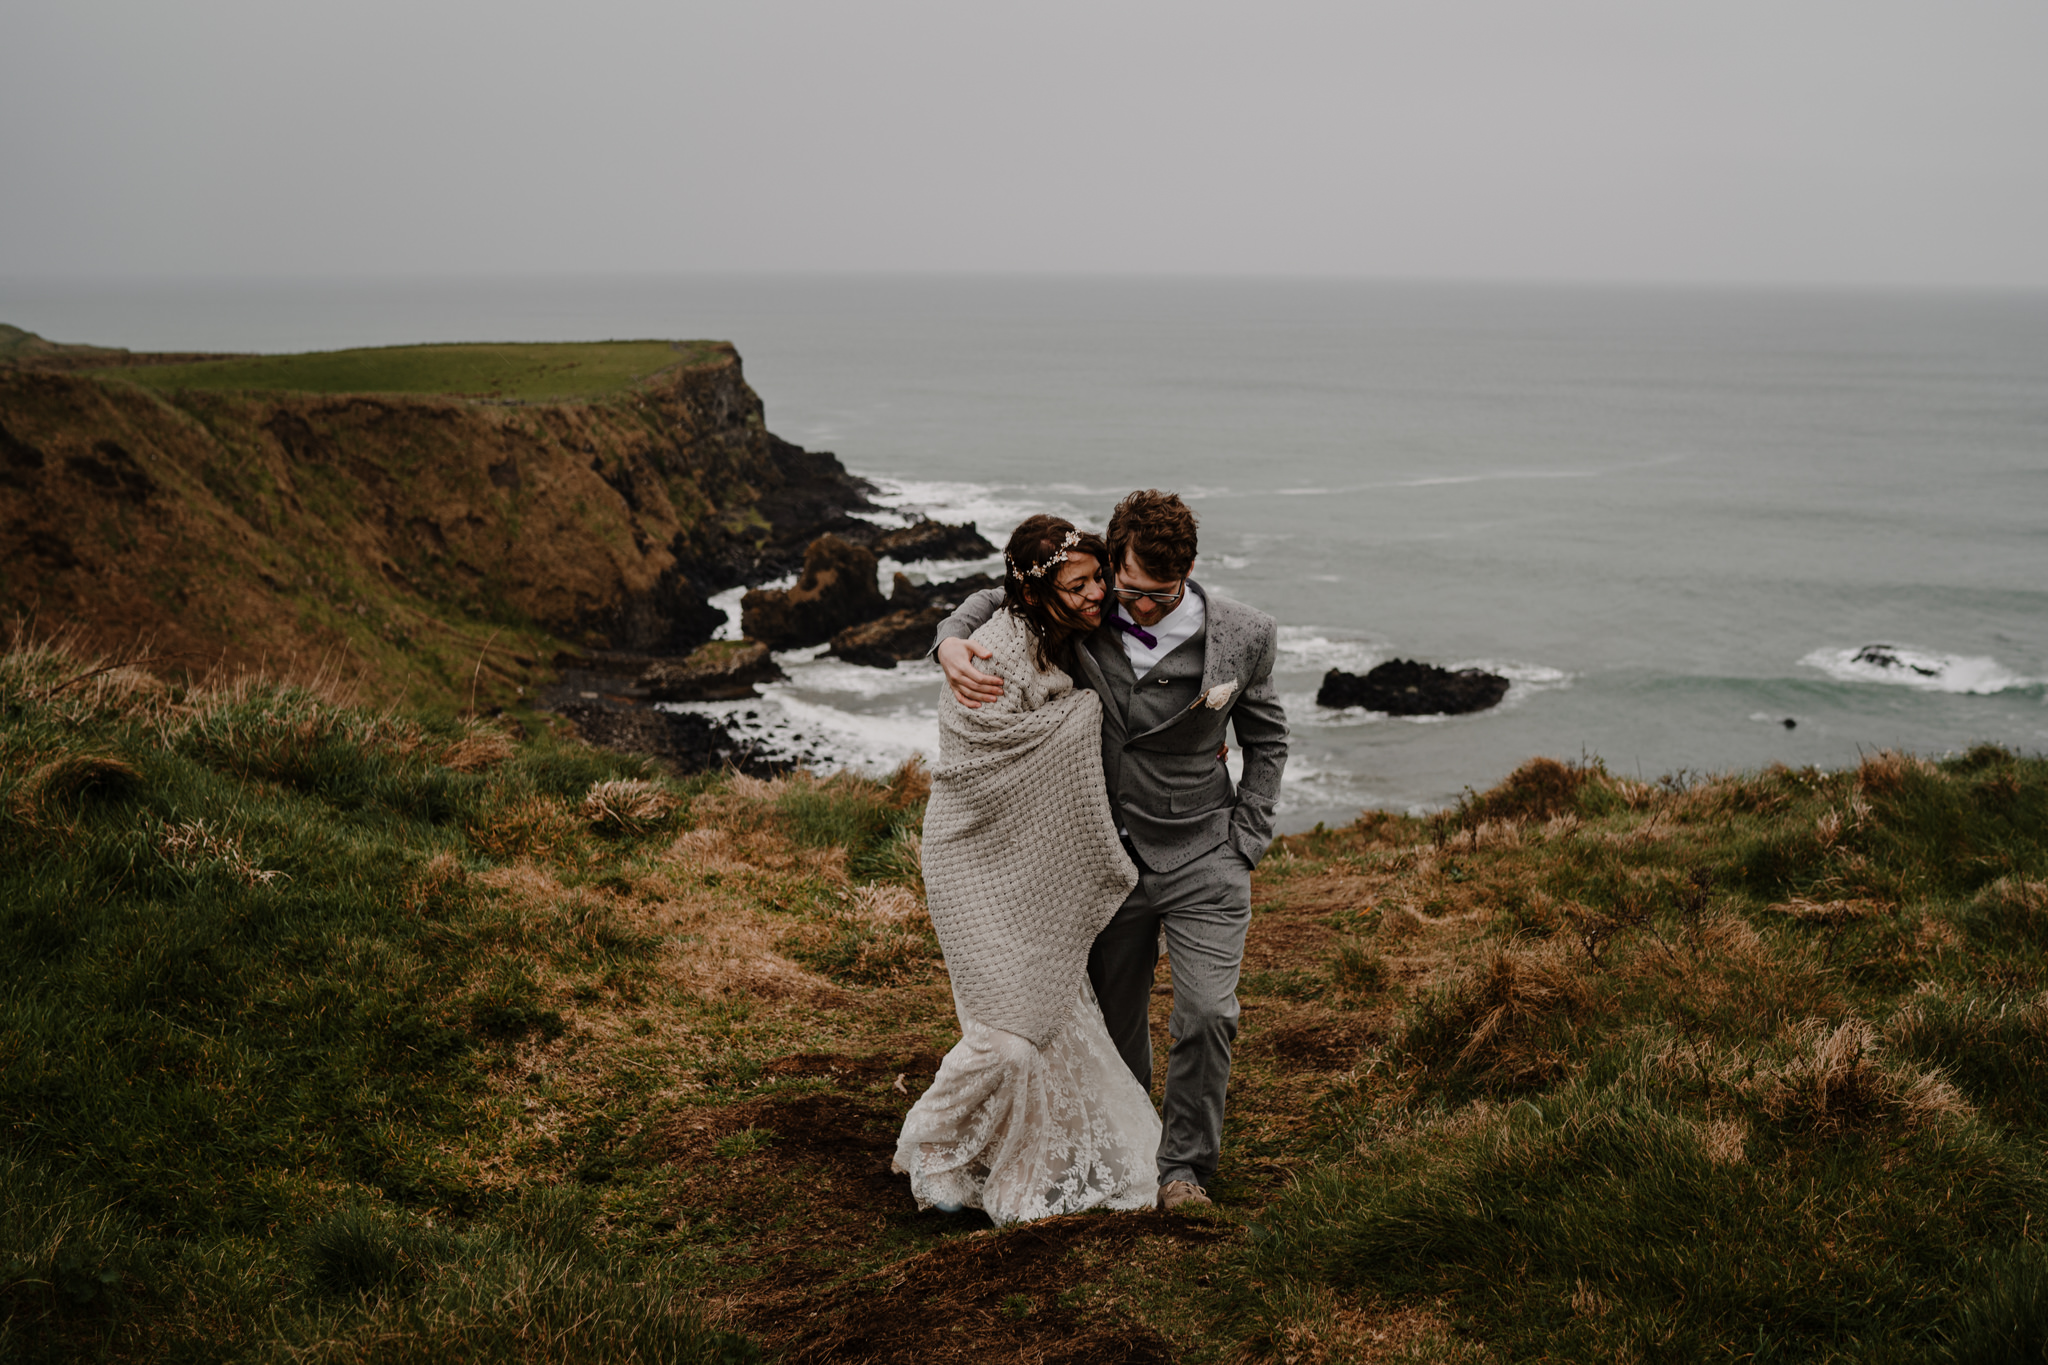 dunluce-castle-giants-causeway-adventure-elopement-M+S-214.jpg